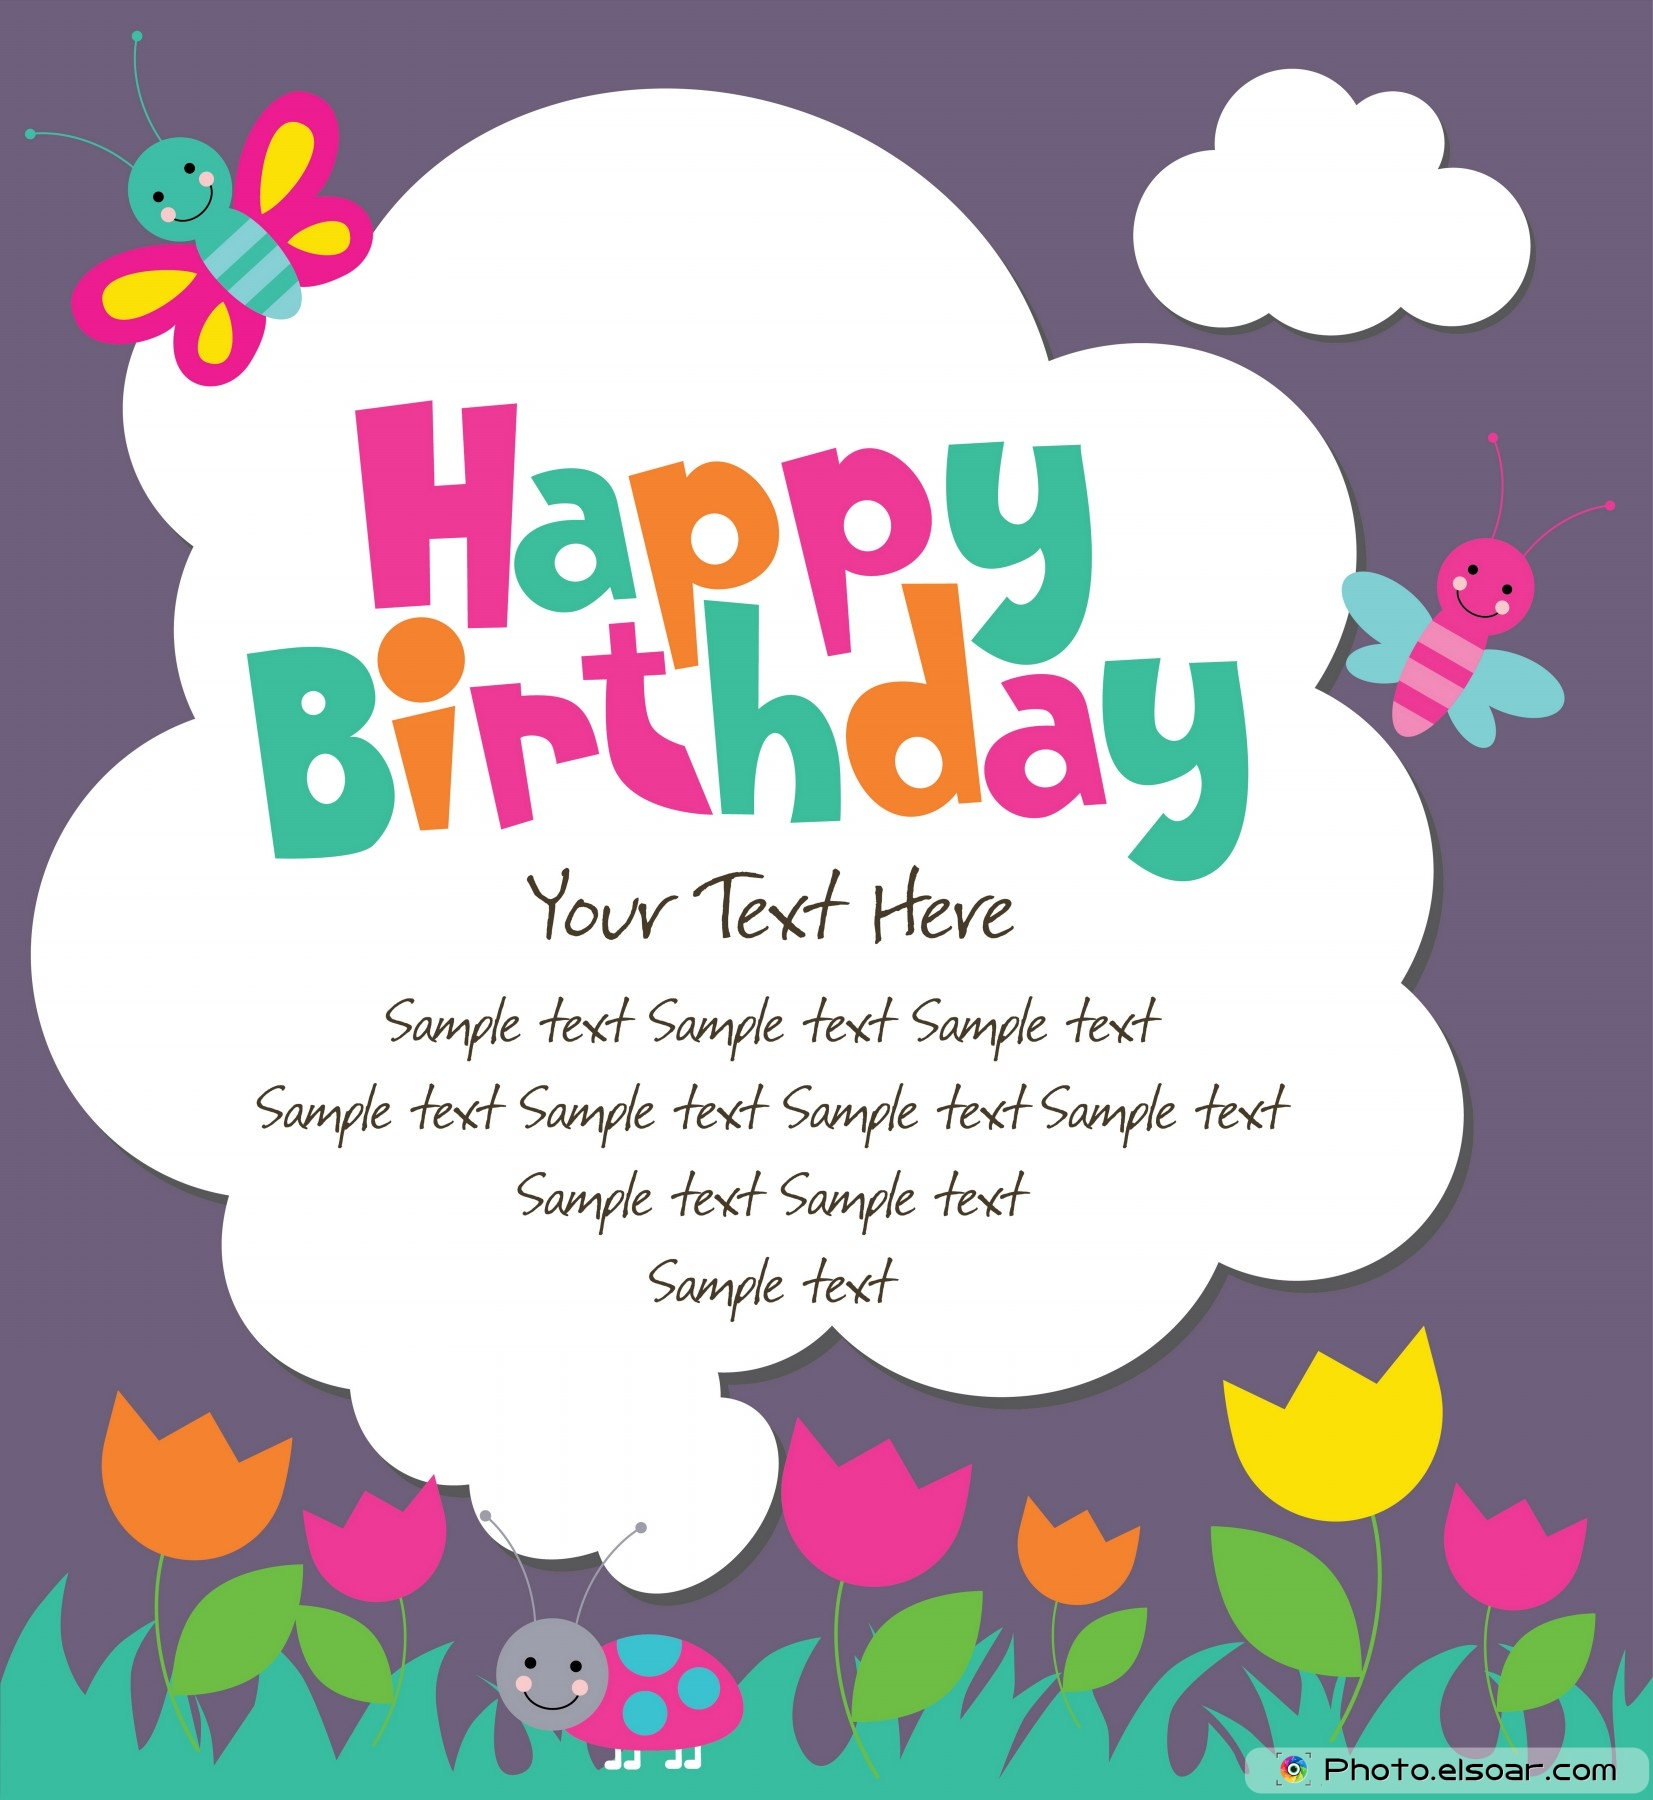 10 Unprecedented Birthday Cards FREE ELSOAR – Birthday Card with Pictures